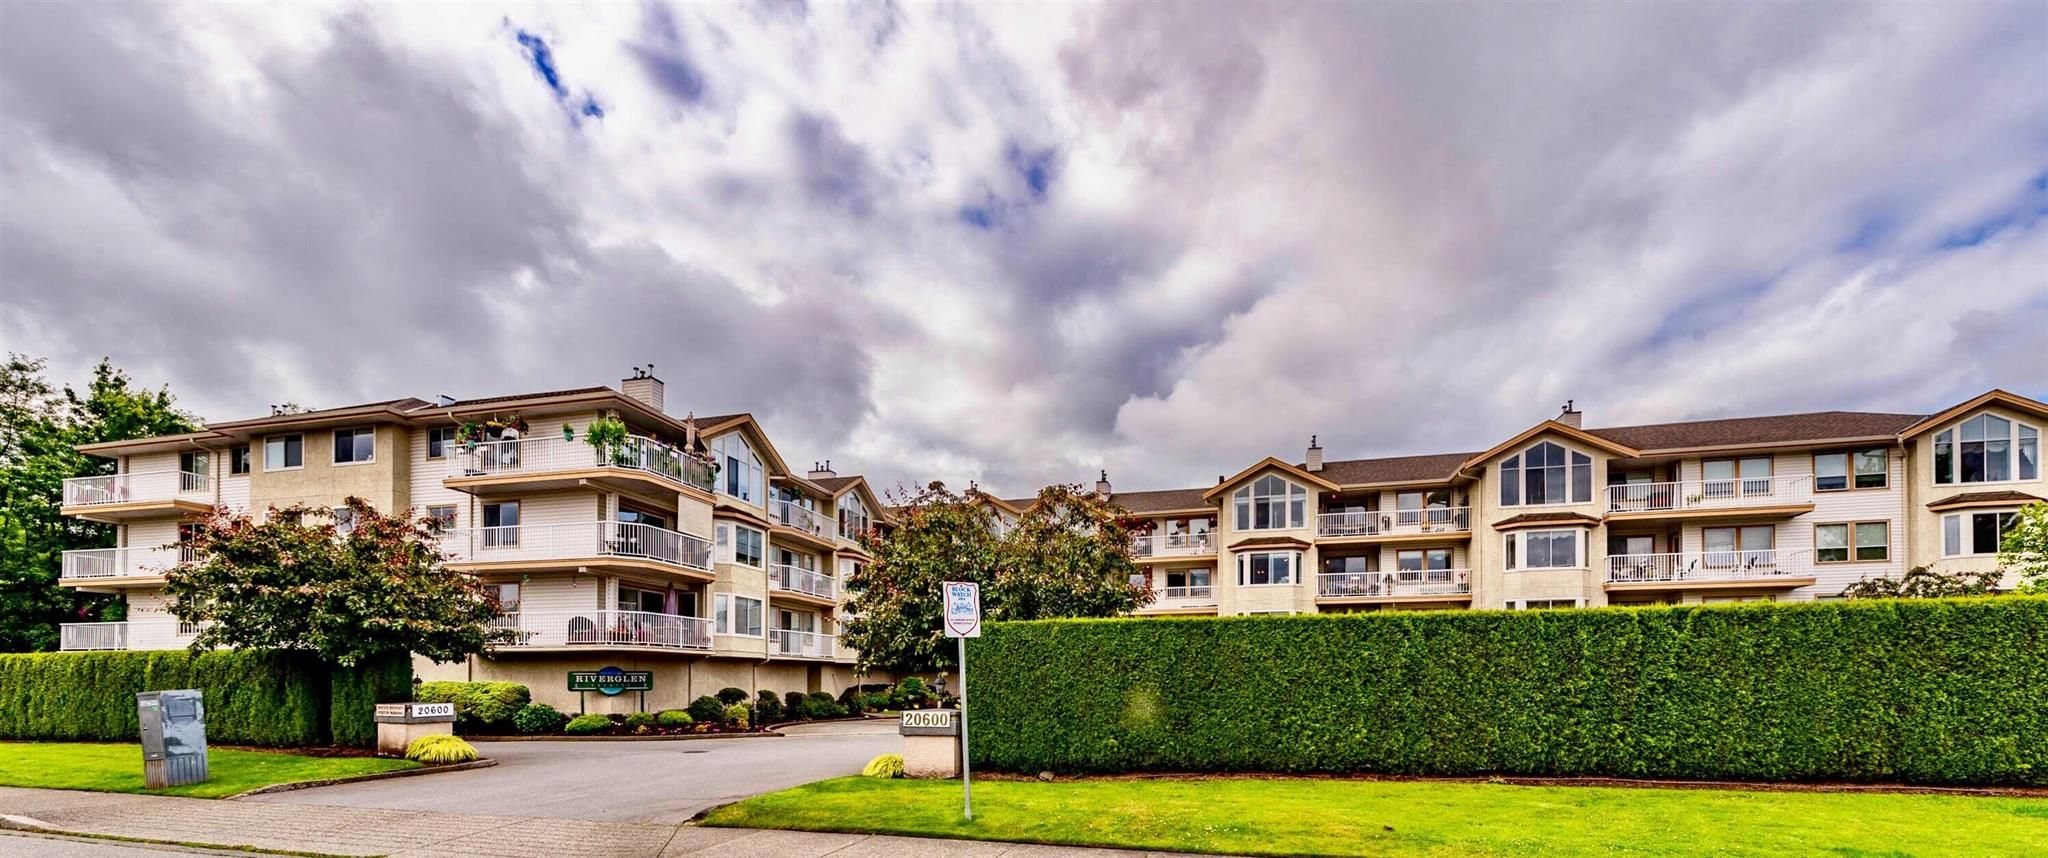 Main Photo: 213 20600 53A Avenue in Langley: Langley City Condo for sale : MLS®# R2593027